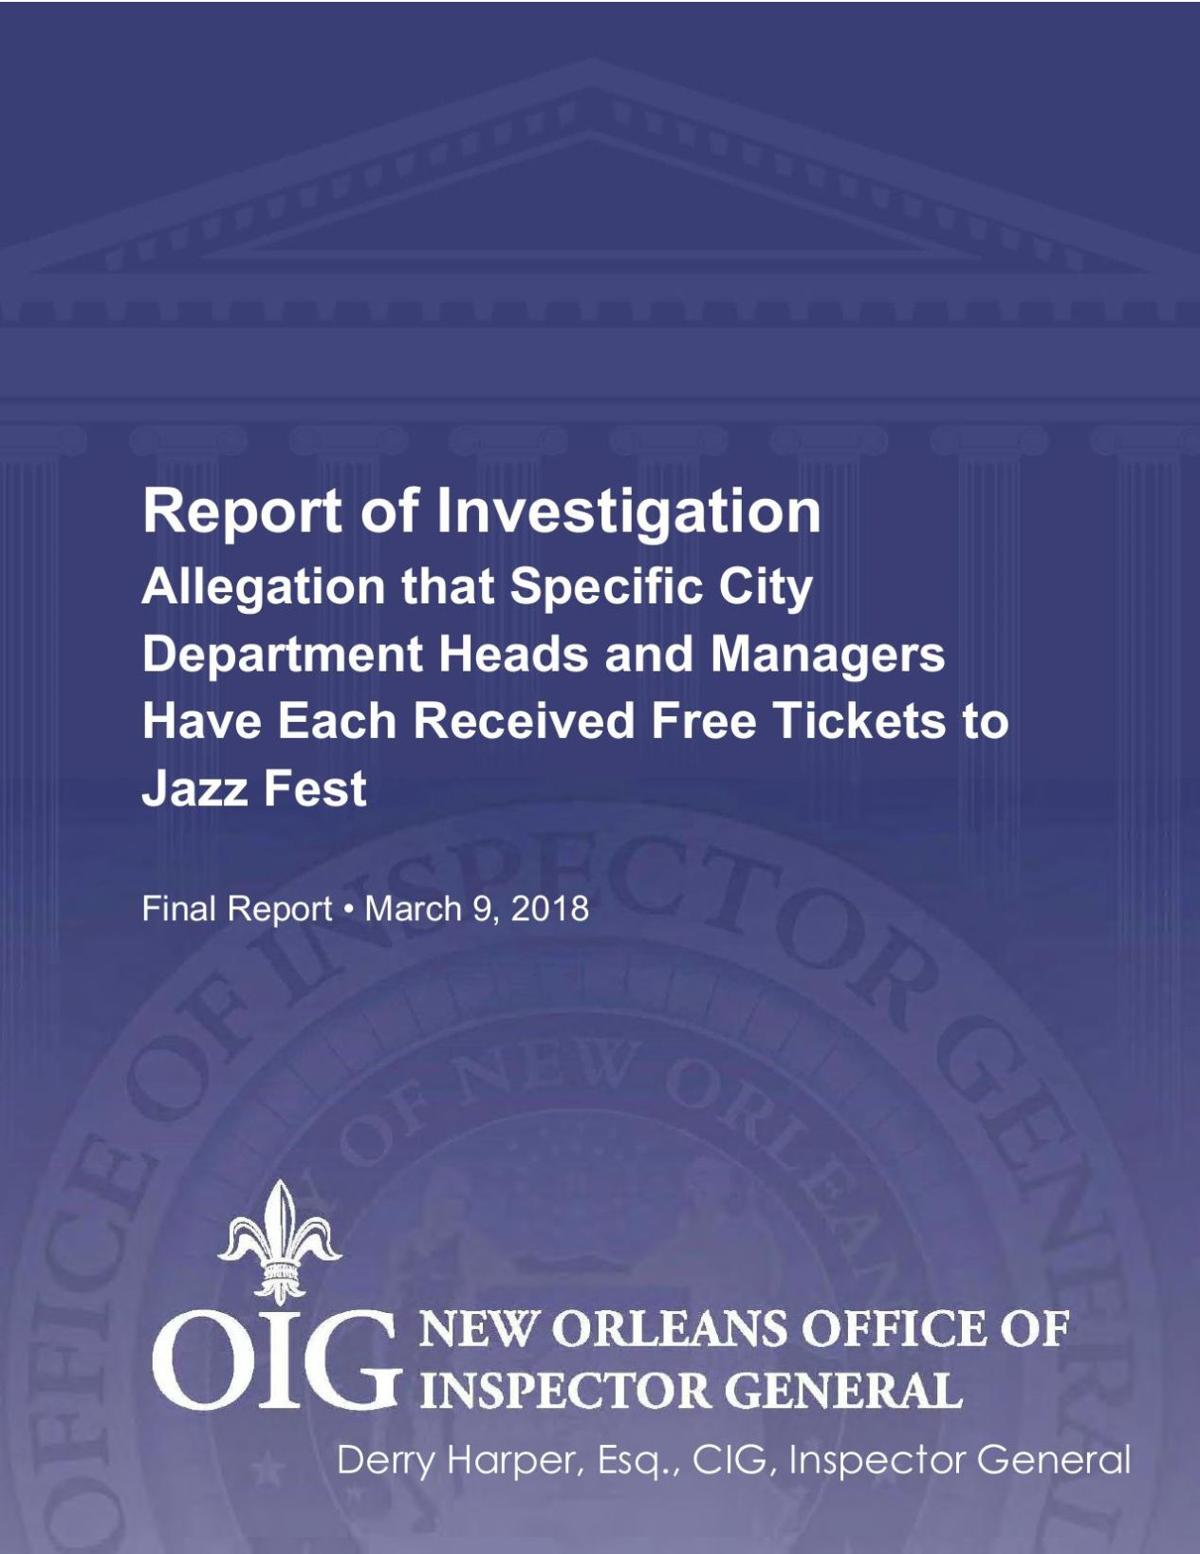 New Orleans Inspector General's Report on JazzFest tickets given to city employees